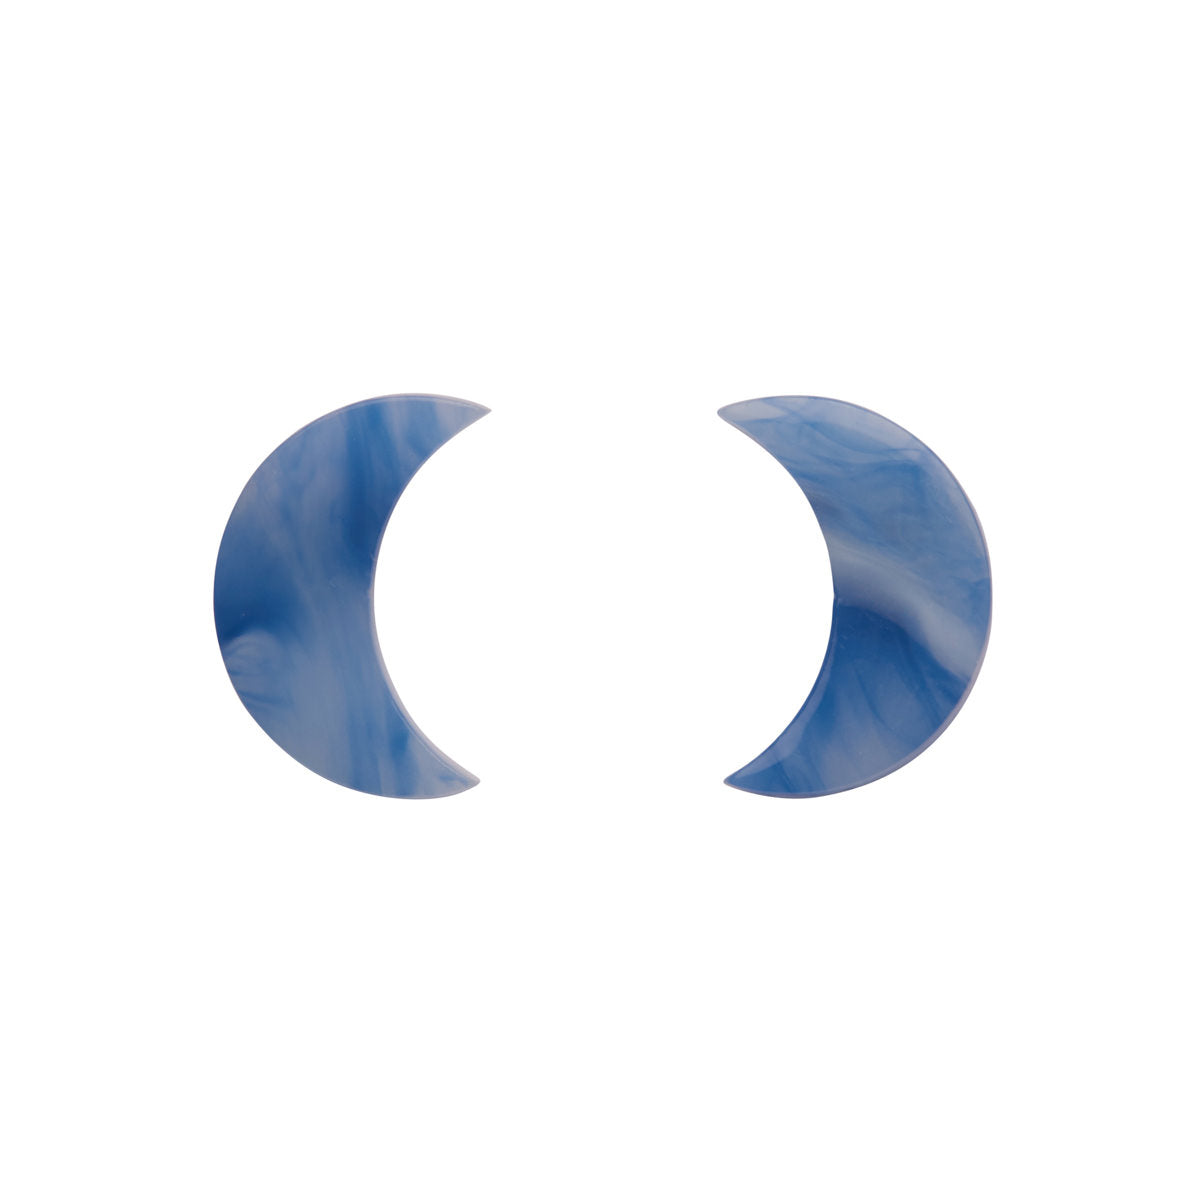 Blue Marble Crescent Moon Earrings by Erstwilder